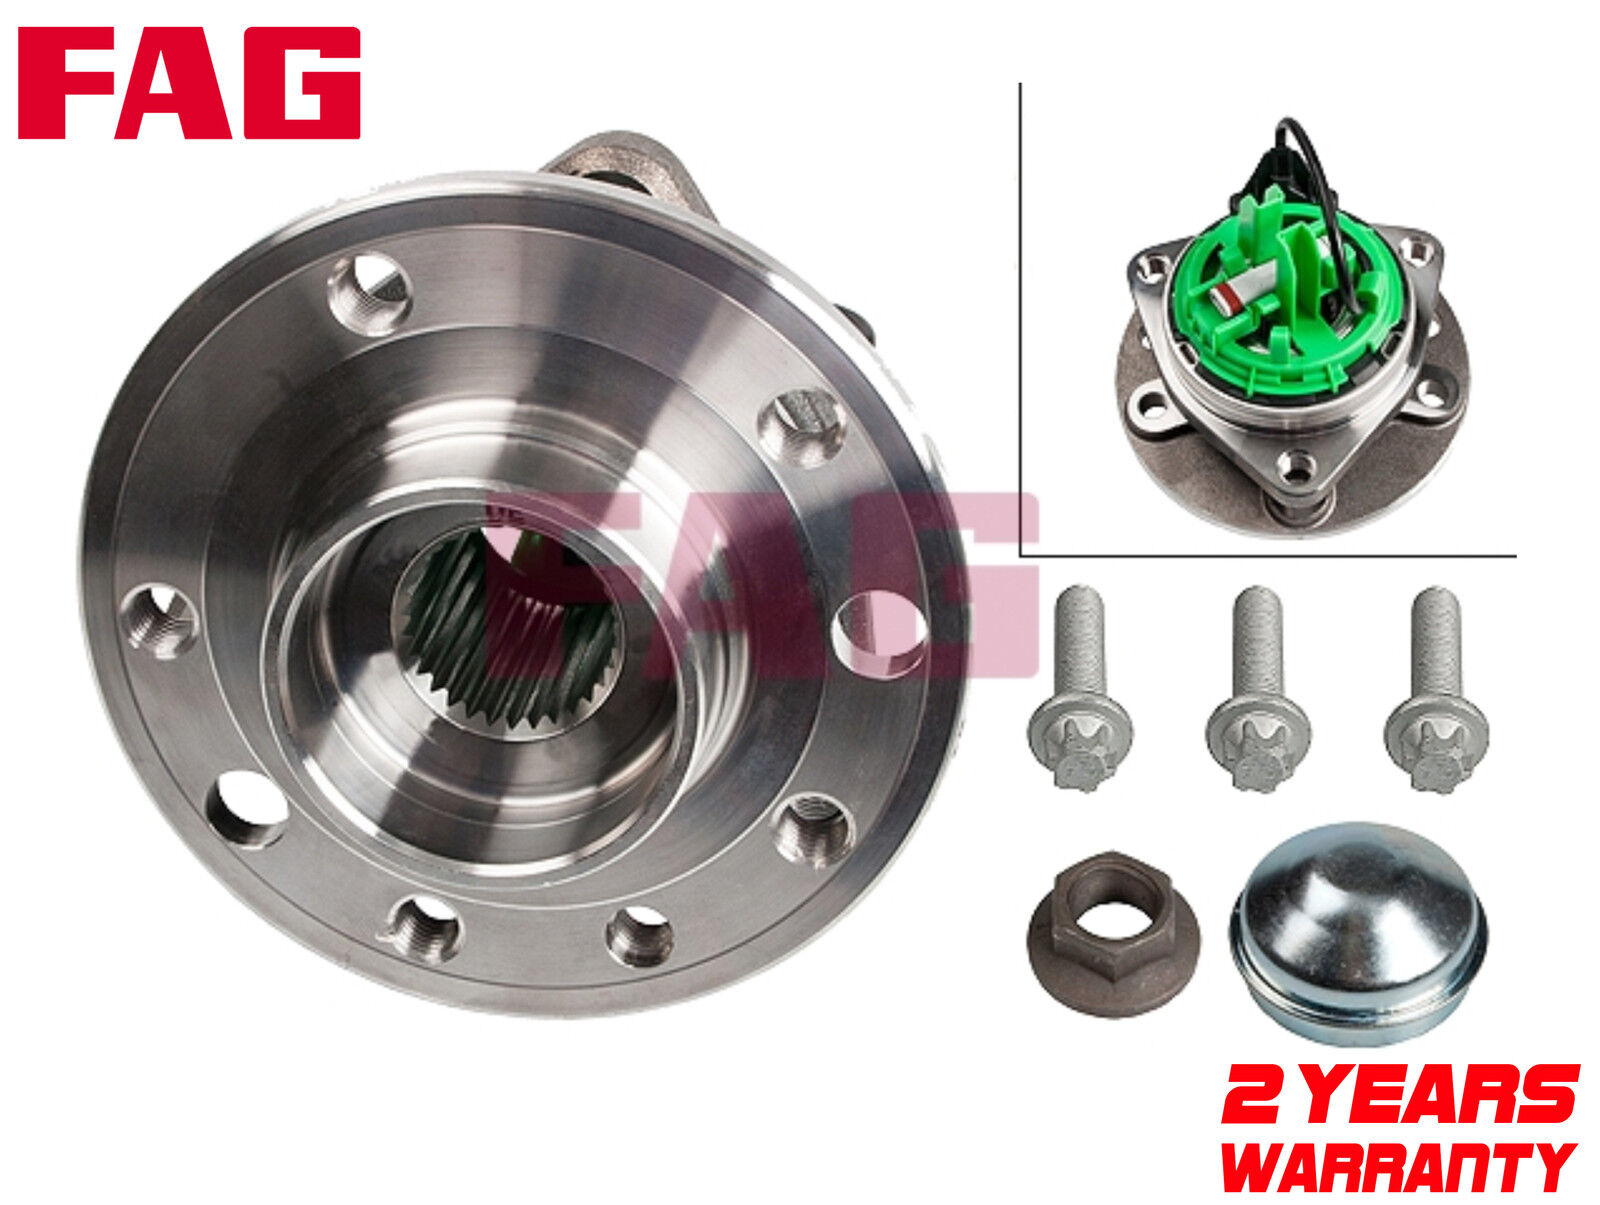 VAUXHALL ASTRA 1.9 CDTI 150BHP FRONT 2 HUB WHEEL BEARING KIT WITH ABS 5 STUD